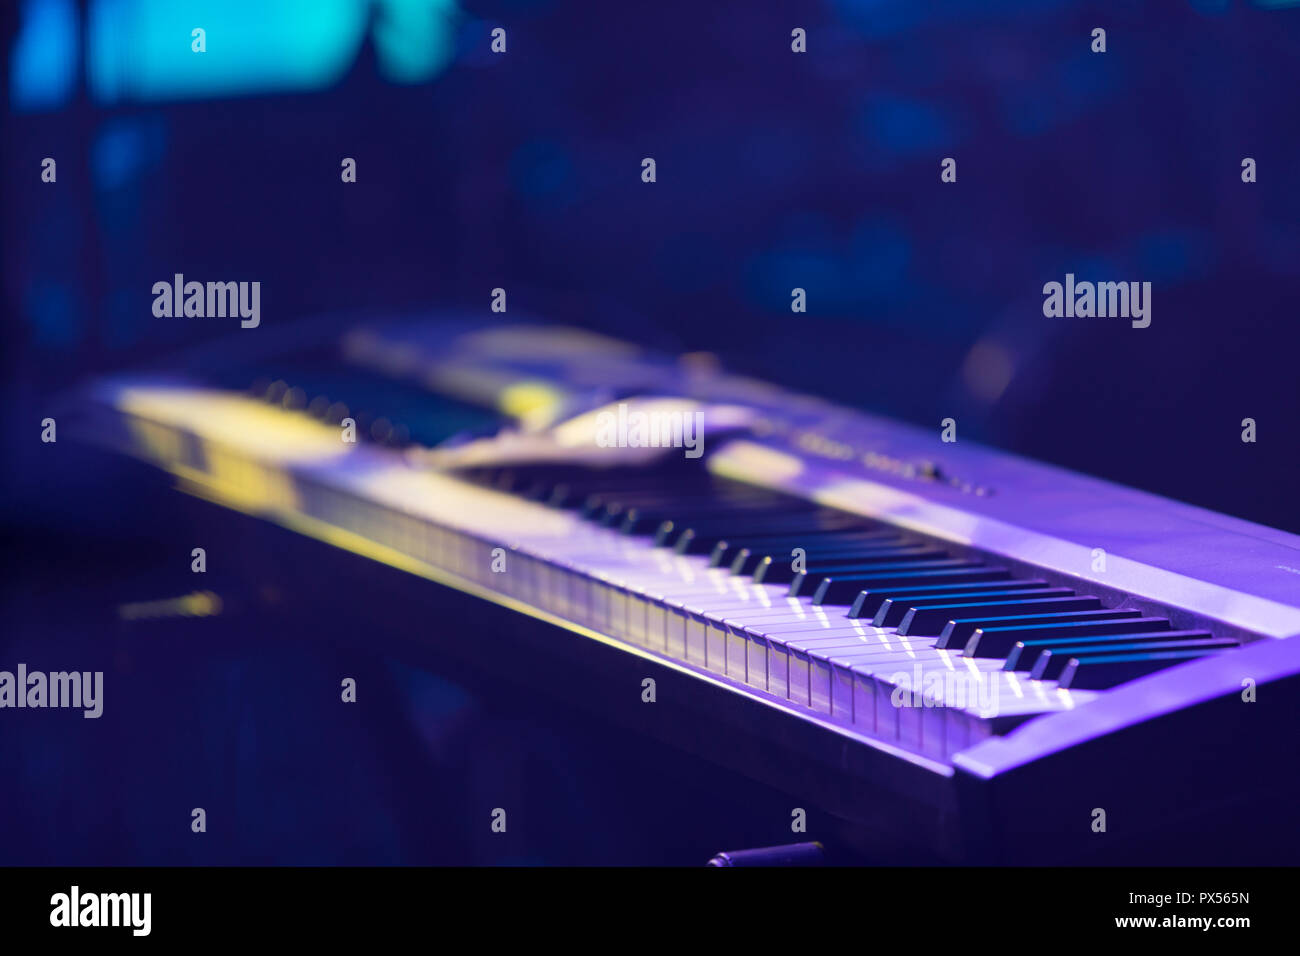 A synthesizer illuminated by stage lights - Stock Image